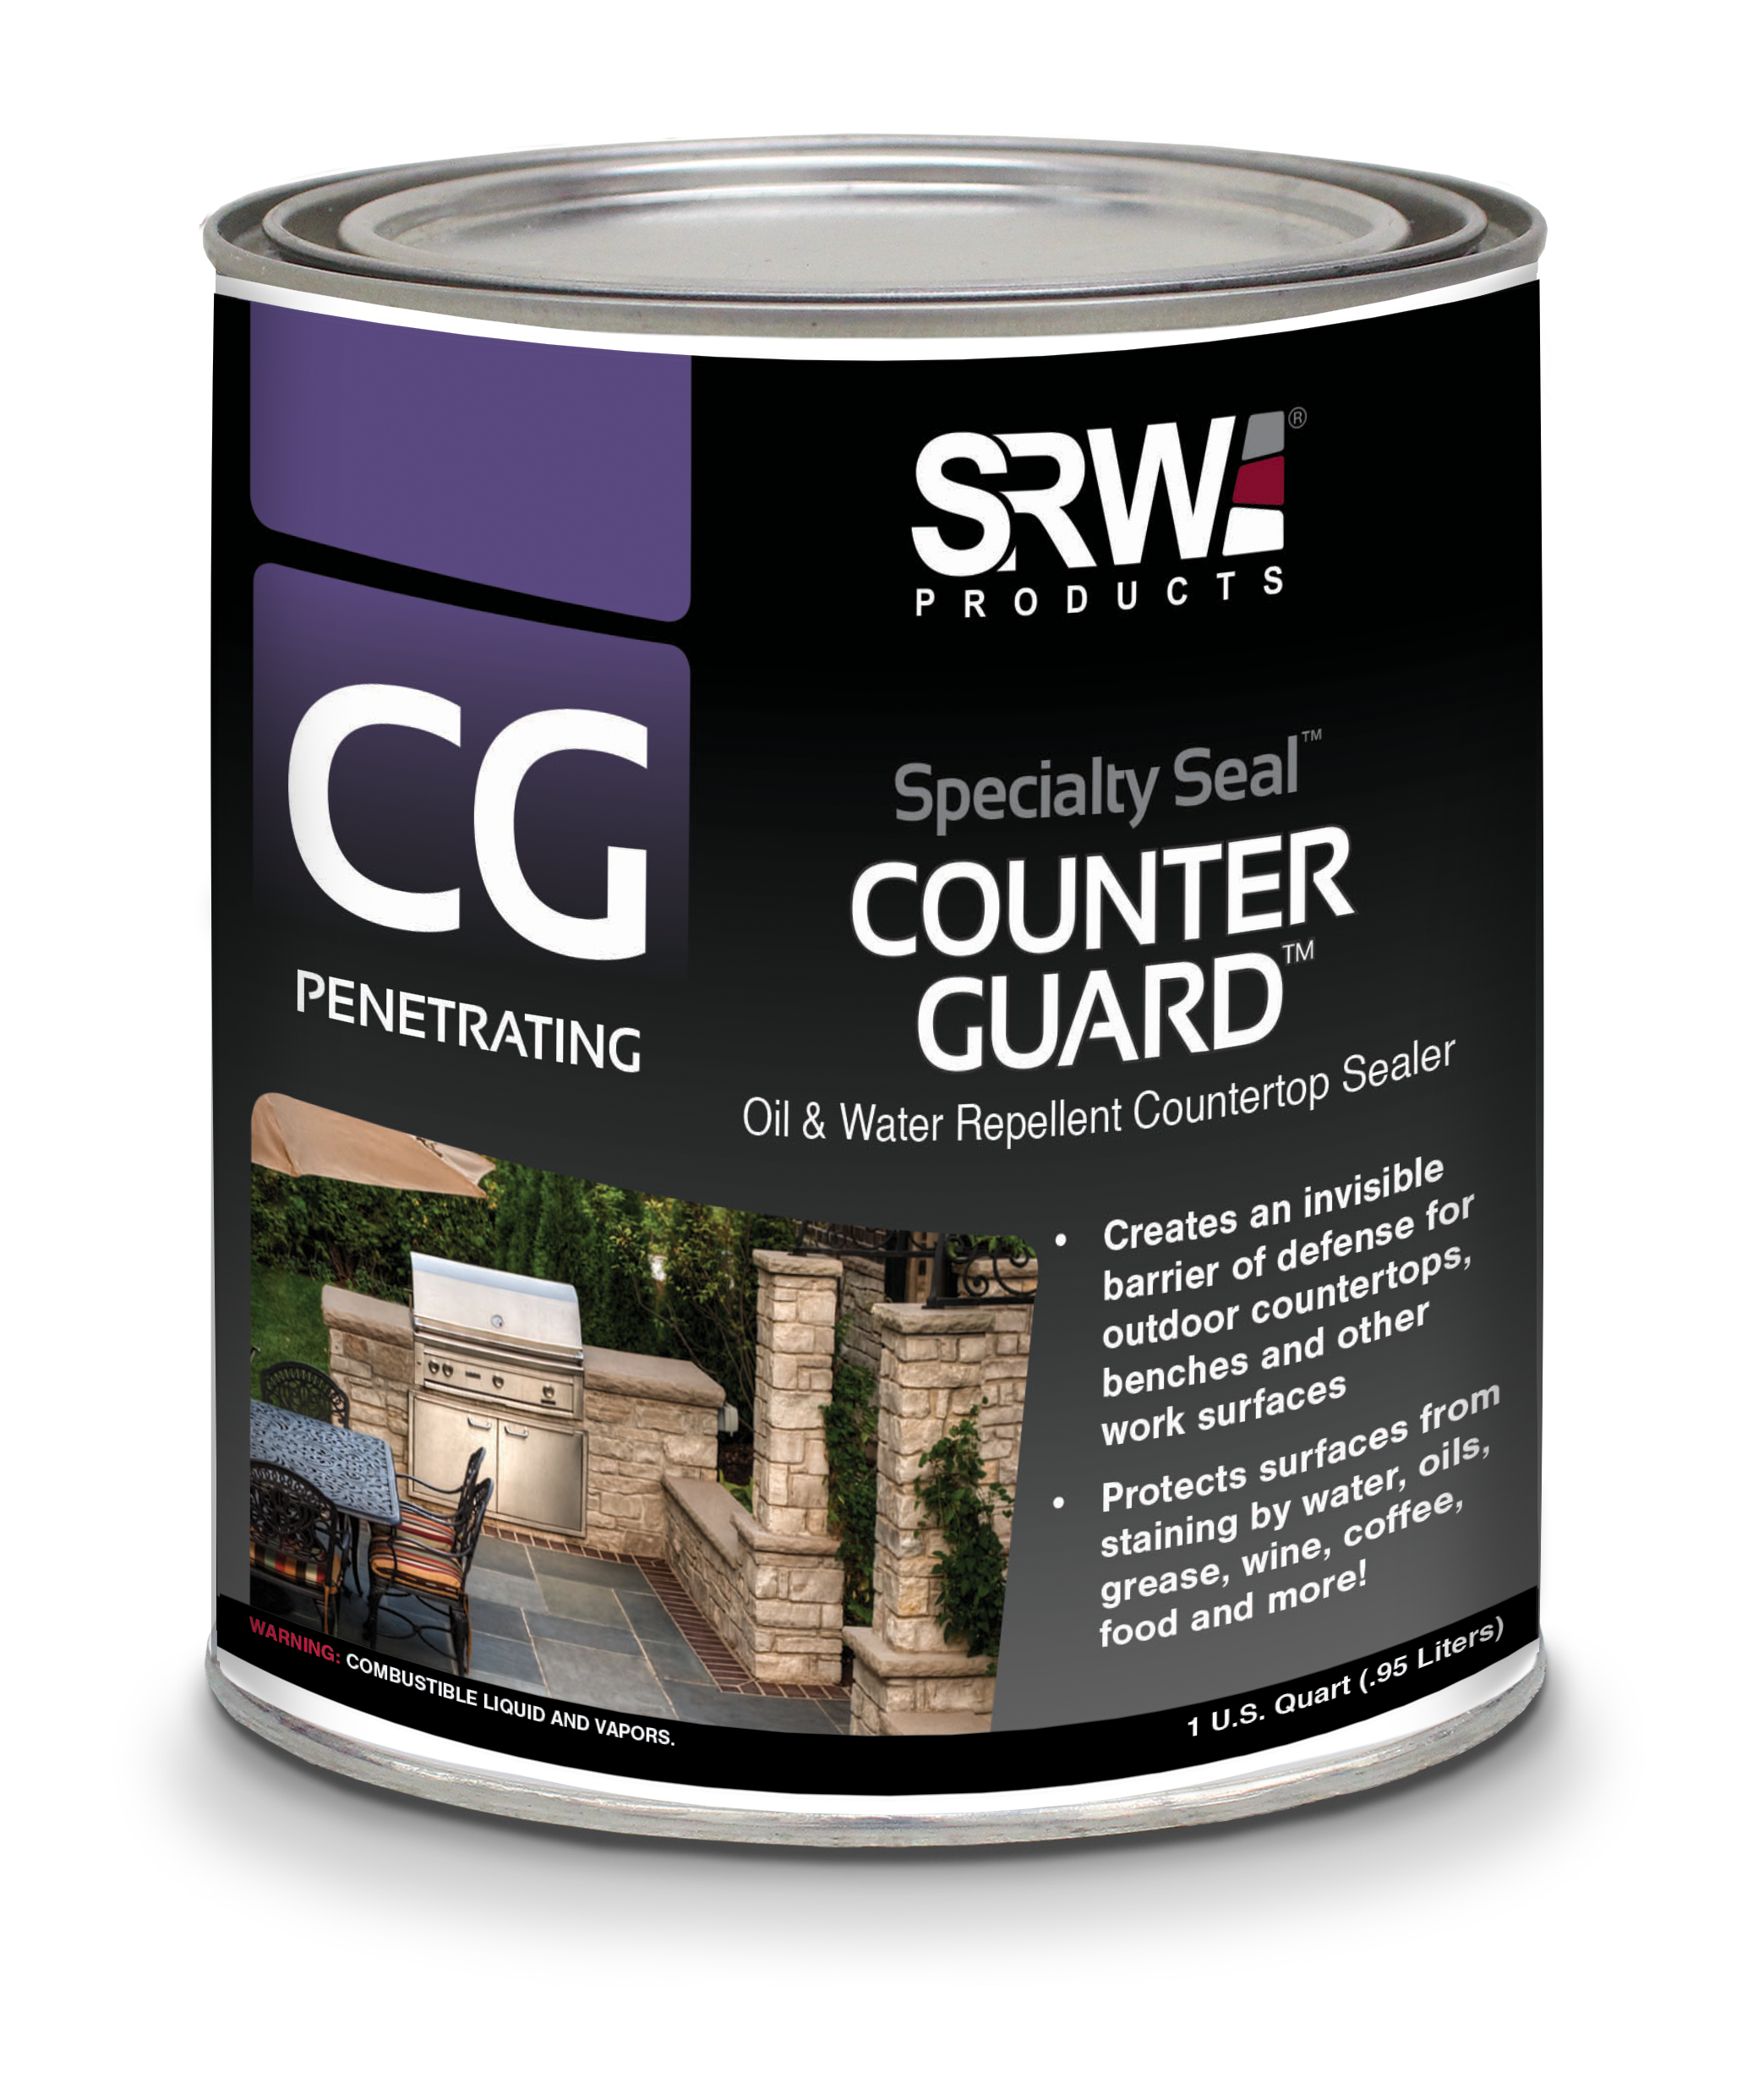 CG Counter Guard Product Package